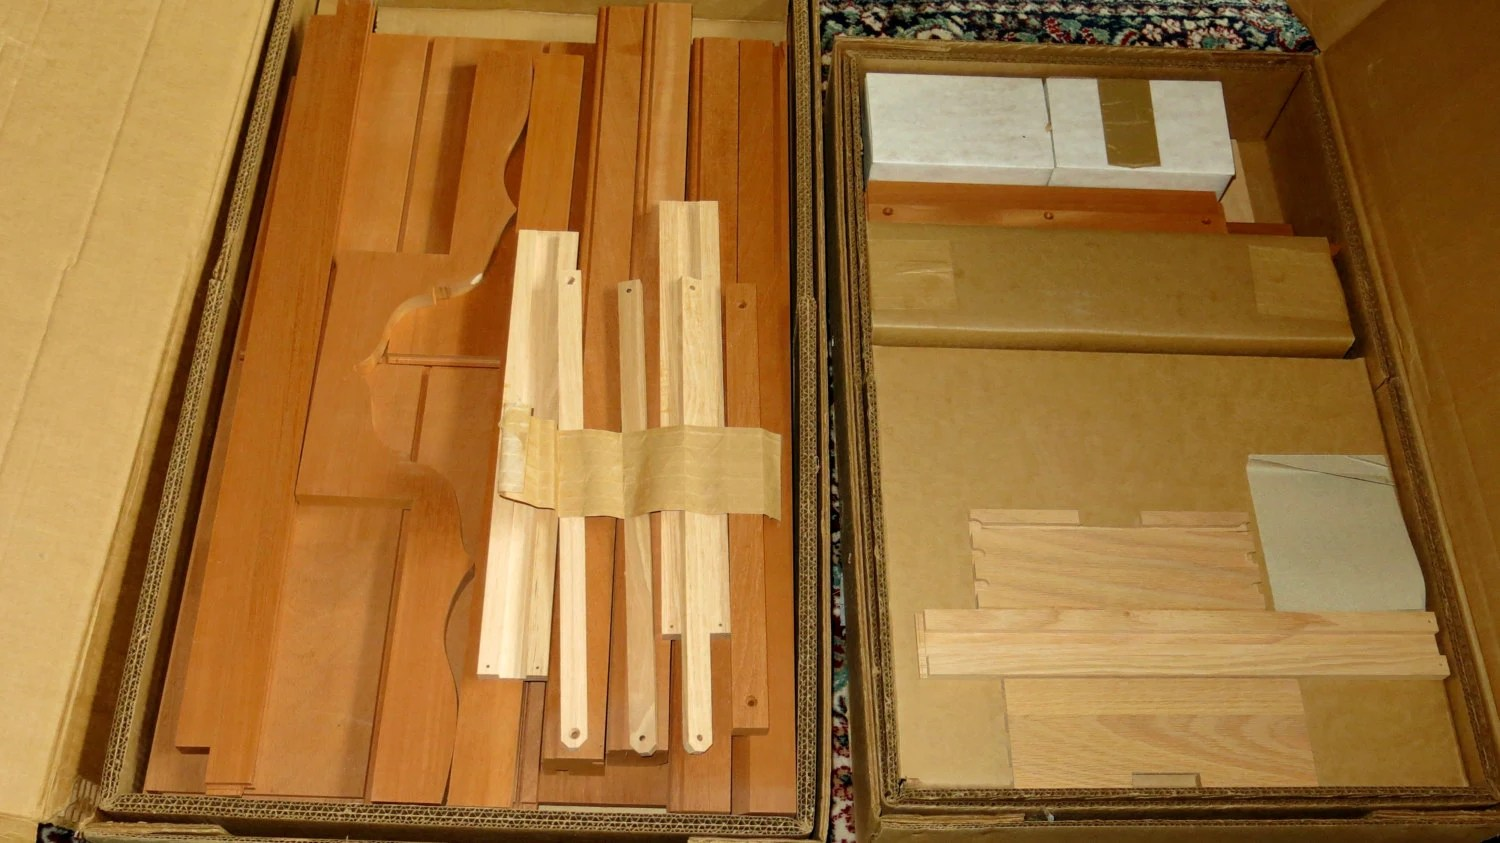 Antique Reproduction Furniture Kits - Bartley Antique Reproduction Furniture Kits Osetacouleur